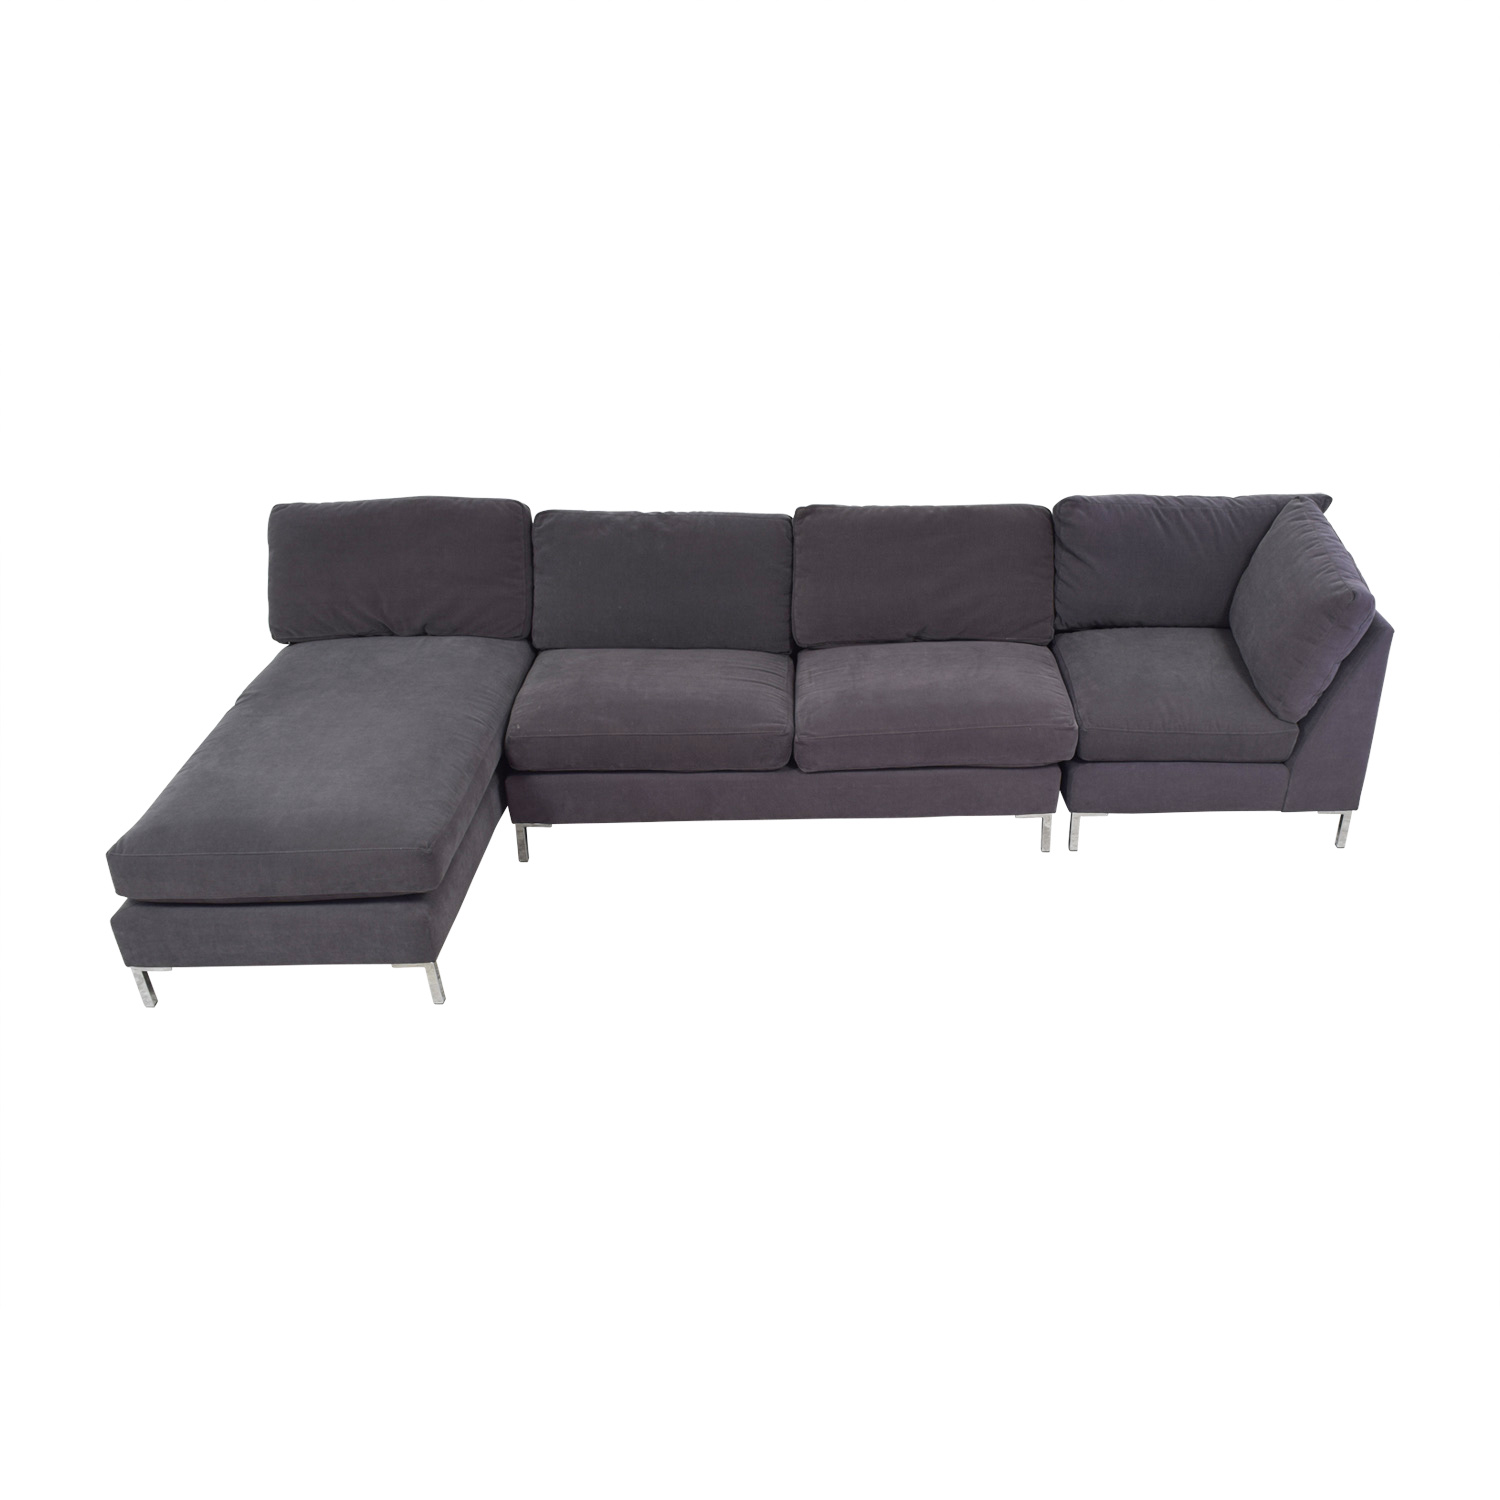 CB2 CB2 Charcoal Grey Chaise Sectional for sale